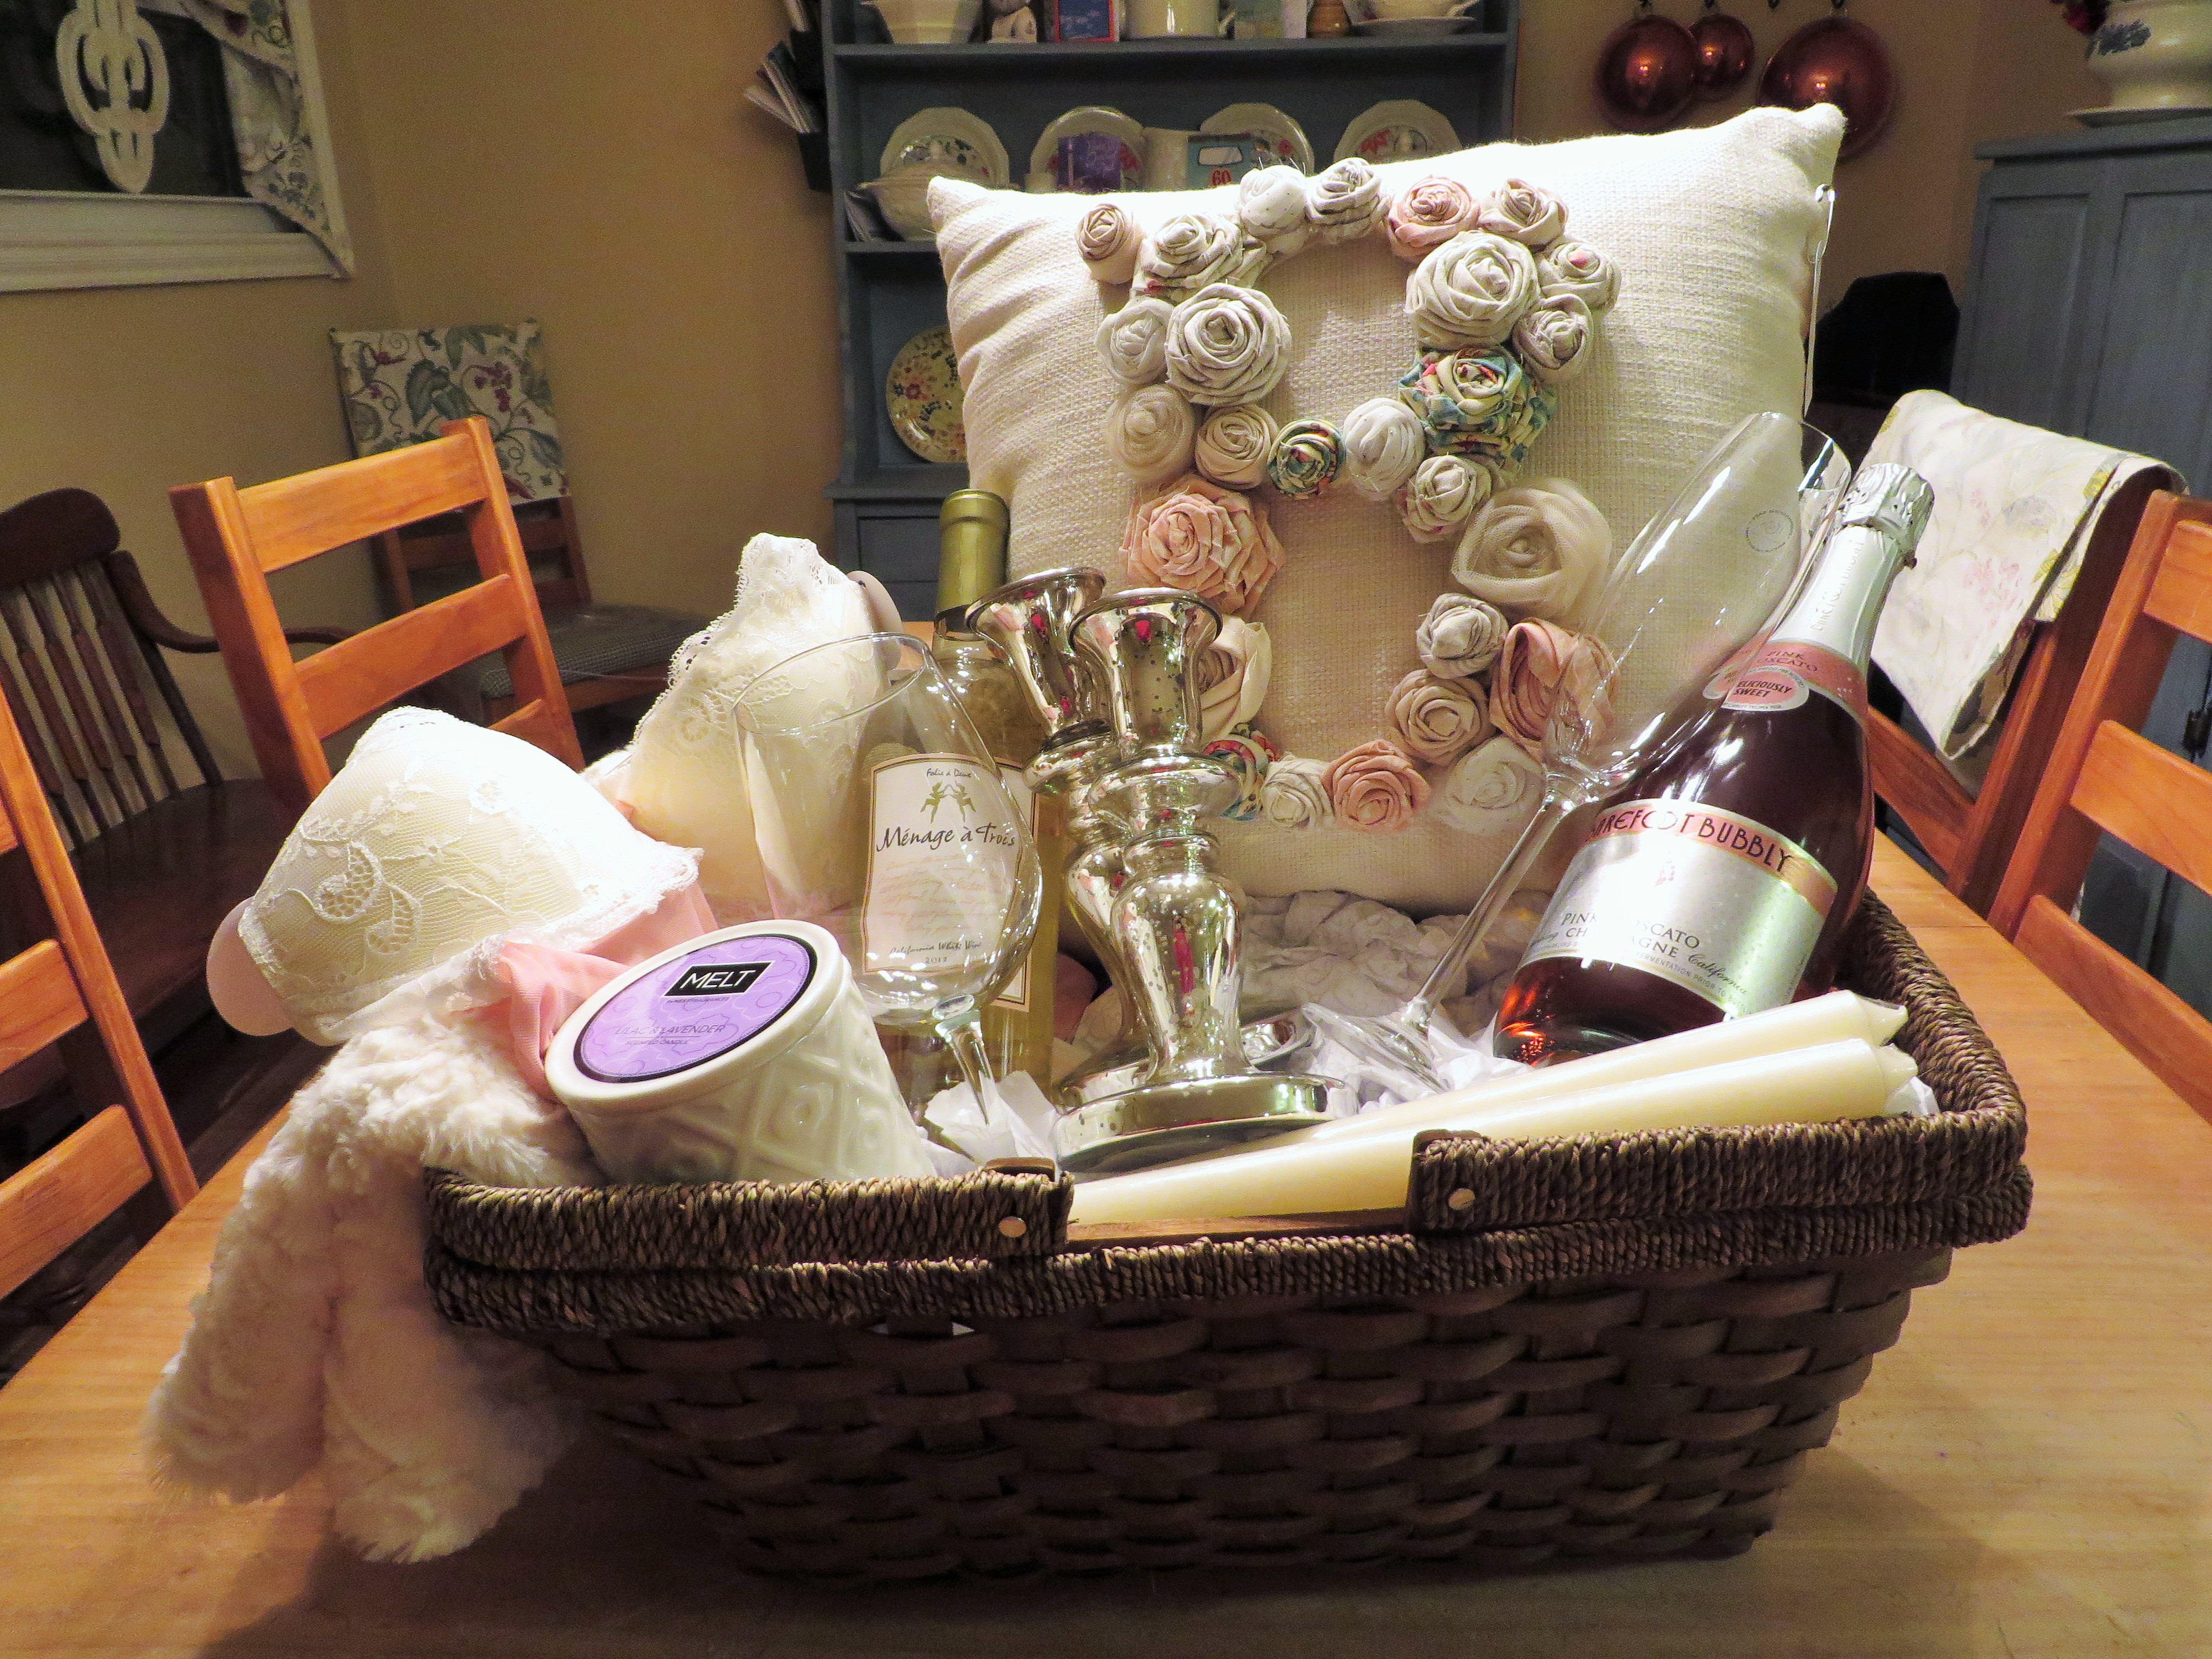 Best ideas about Bridal Shower Gift Ideas . Save or Pin Bridal Shower Gift Basket Now.